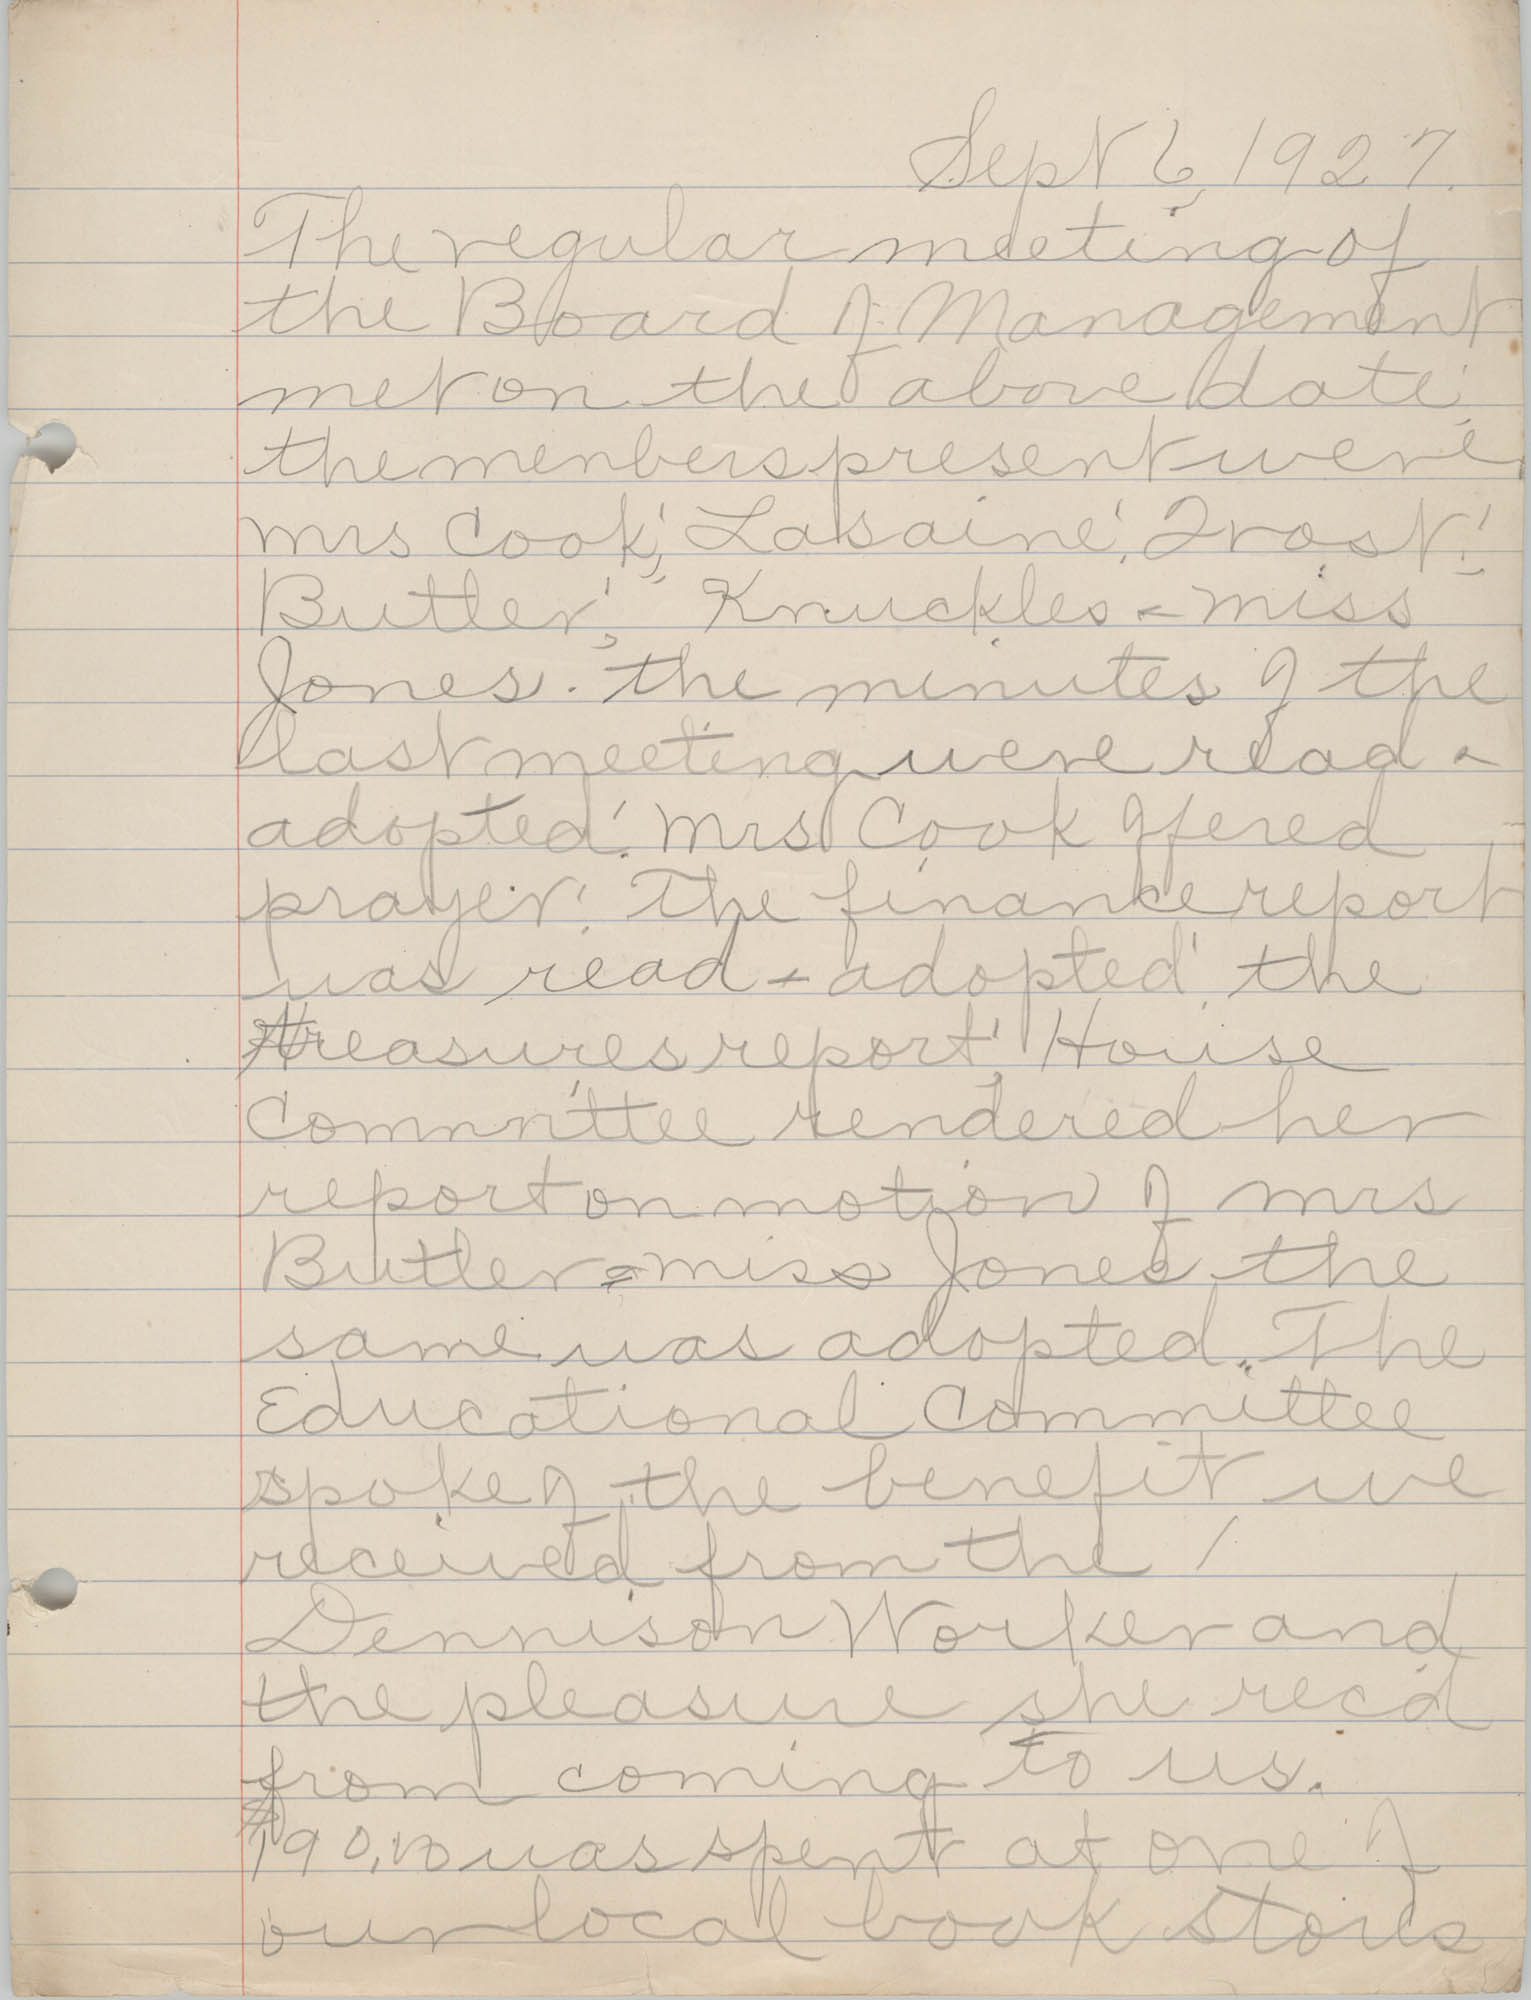 Minutes to the Board of Management, Coming Street Y.W.C.A., September 6, 1927